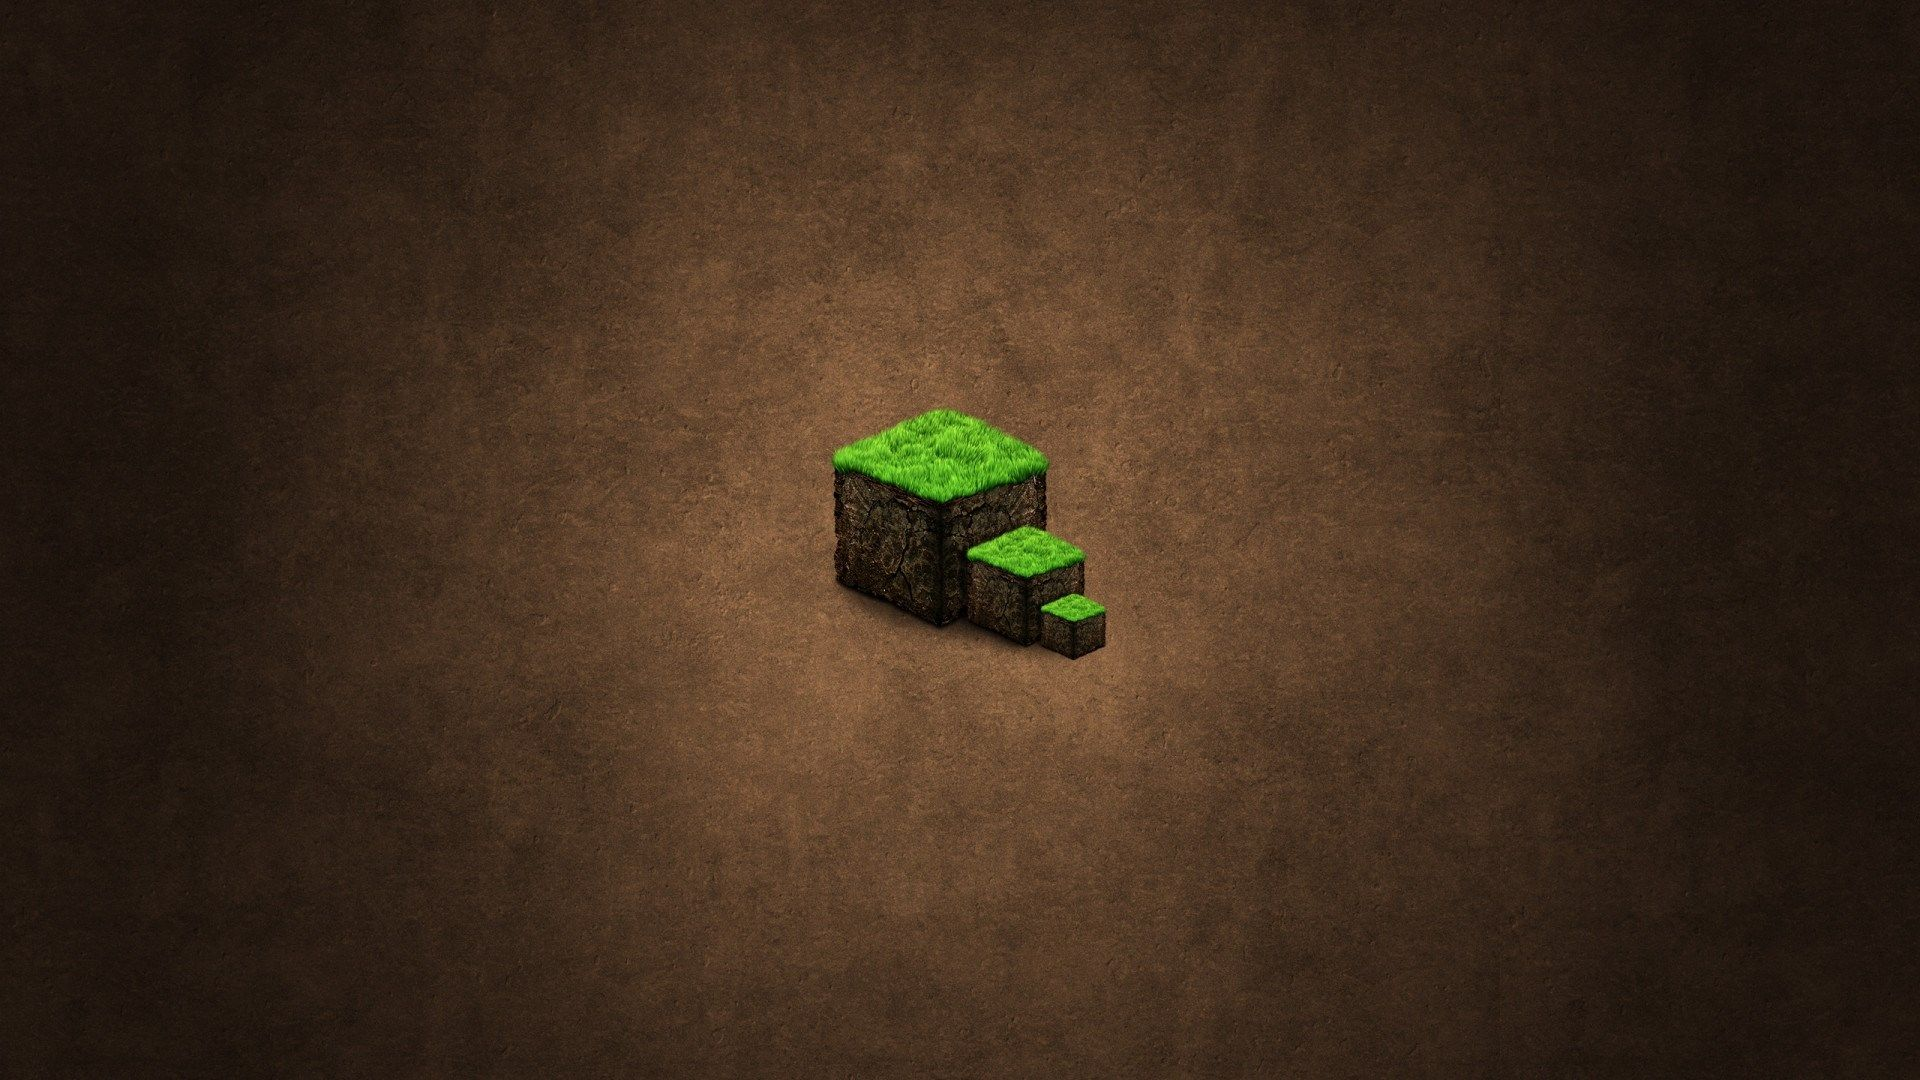 Best Wallpaper Minecraft Iphone6 - 4a6222541db7306365df632ae9c28b74  Perfect Image Reference_604516.jpg